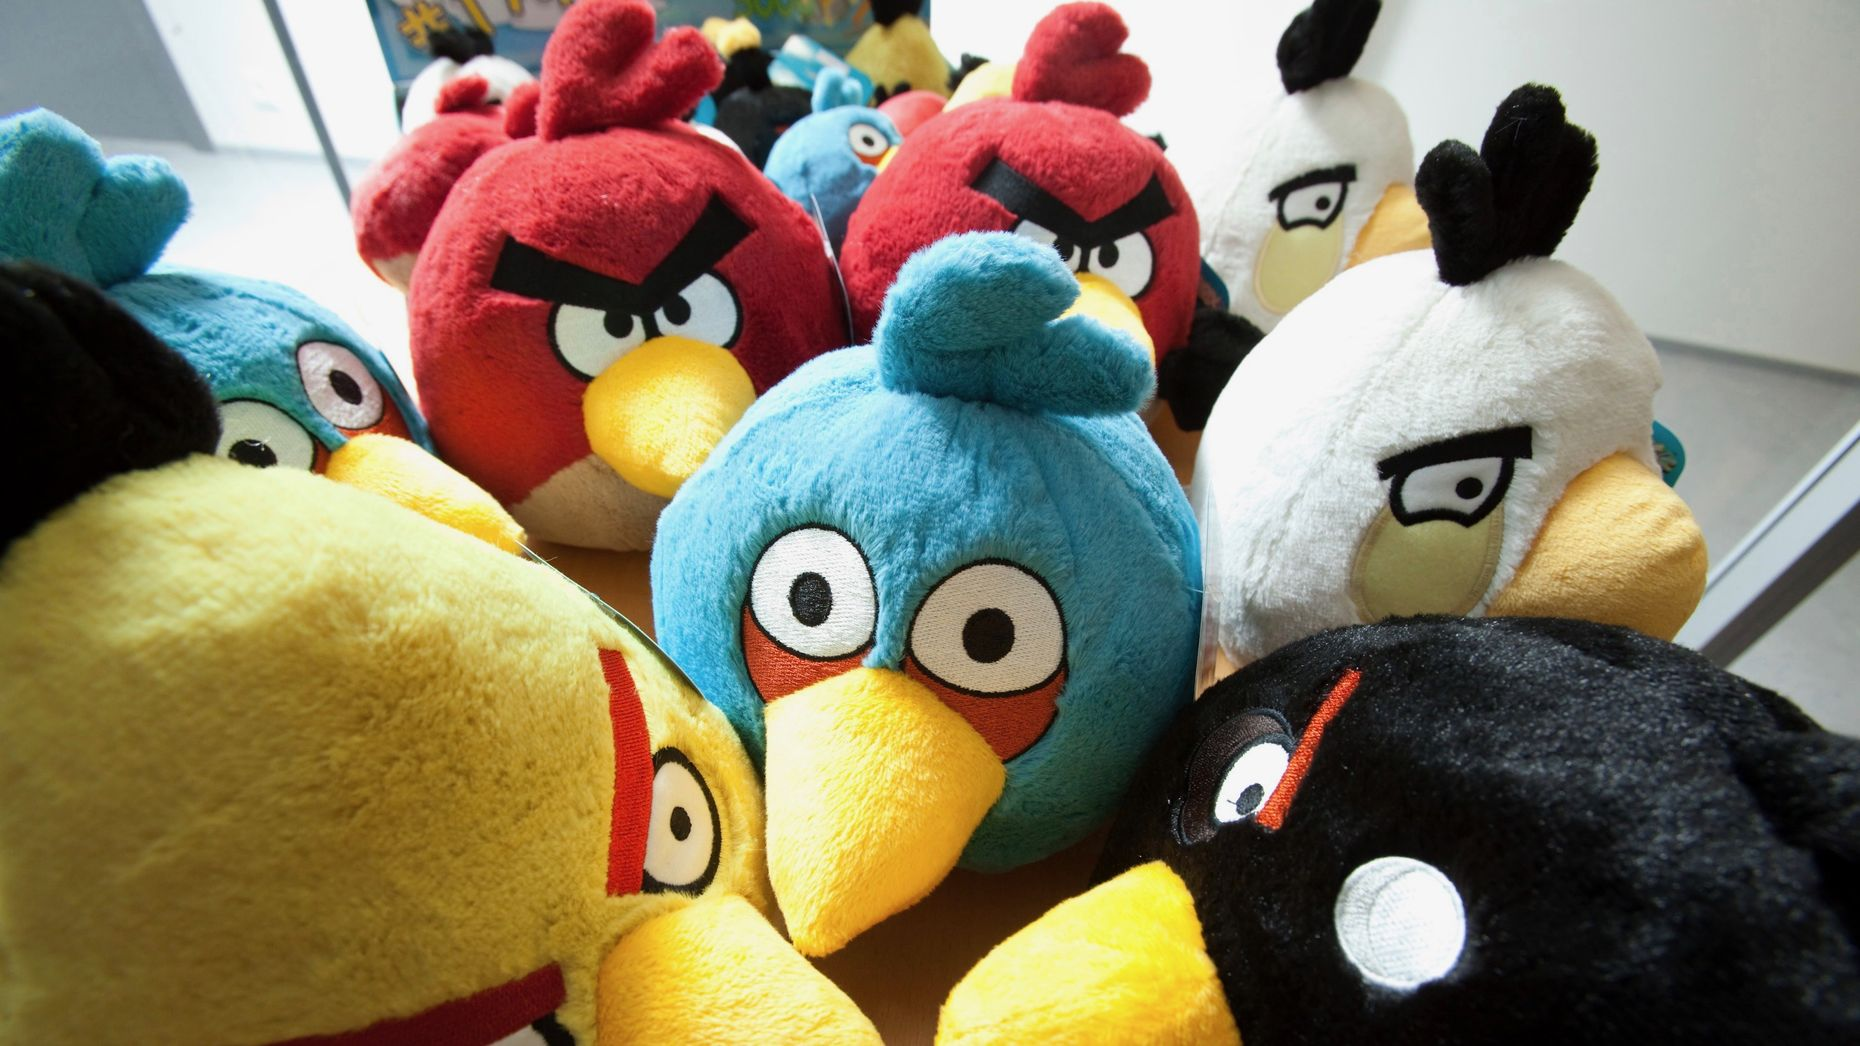 Angry Birds toys in display in Finland. Photo by Bloomberg